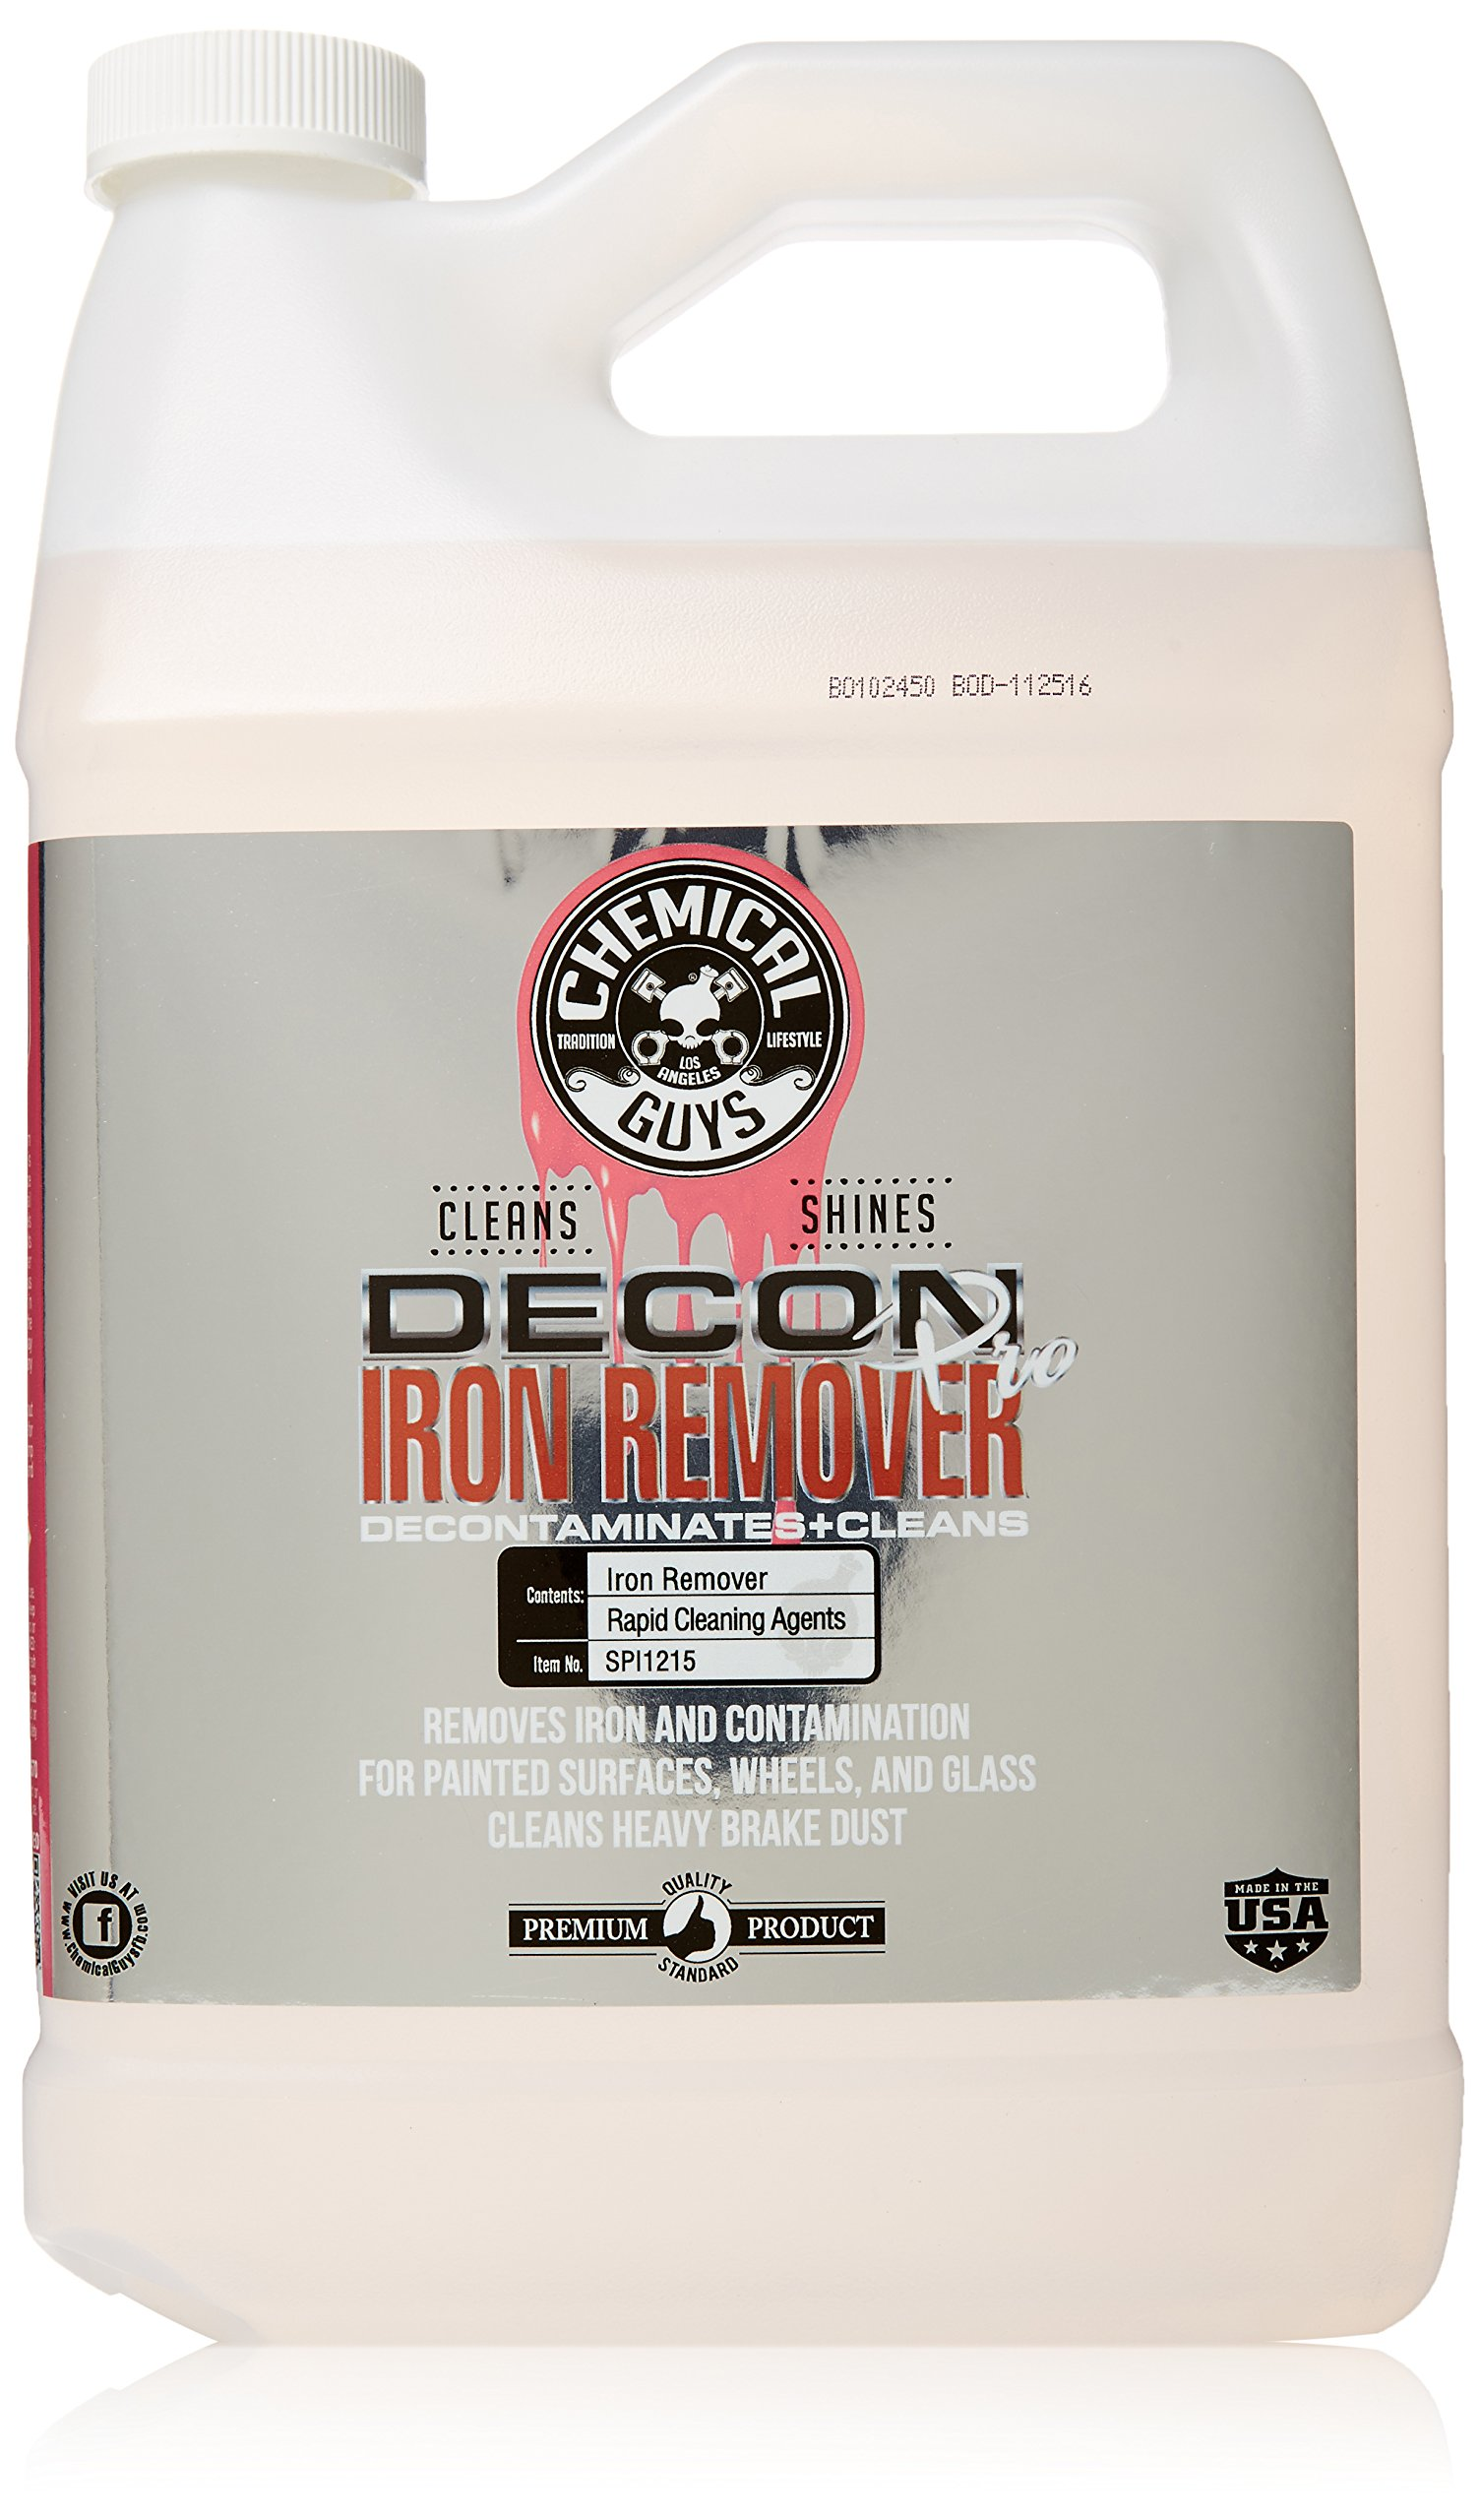 Chemical Guys SPI215 Decon Pro Decontaminant and Iron Remover (1 Gal), 128. Fluid_Ounces by Chemical Guys (Image #1)